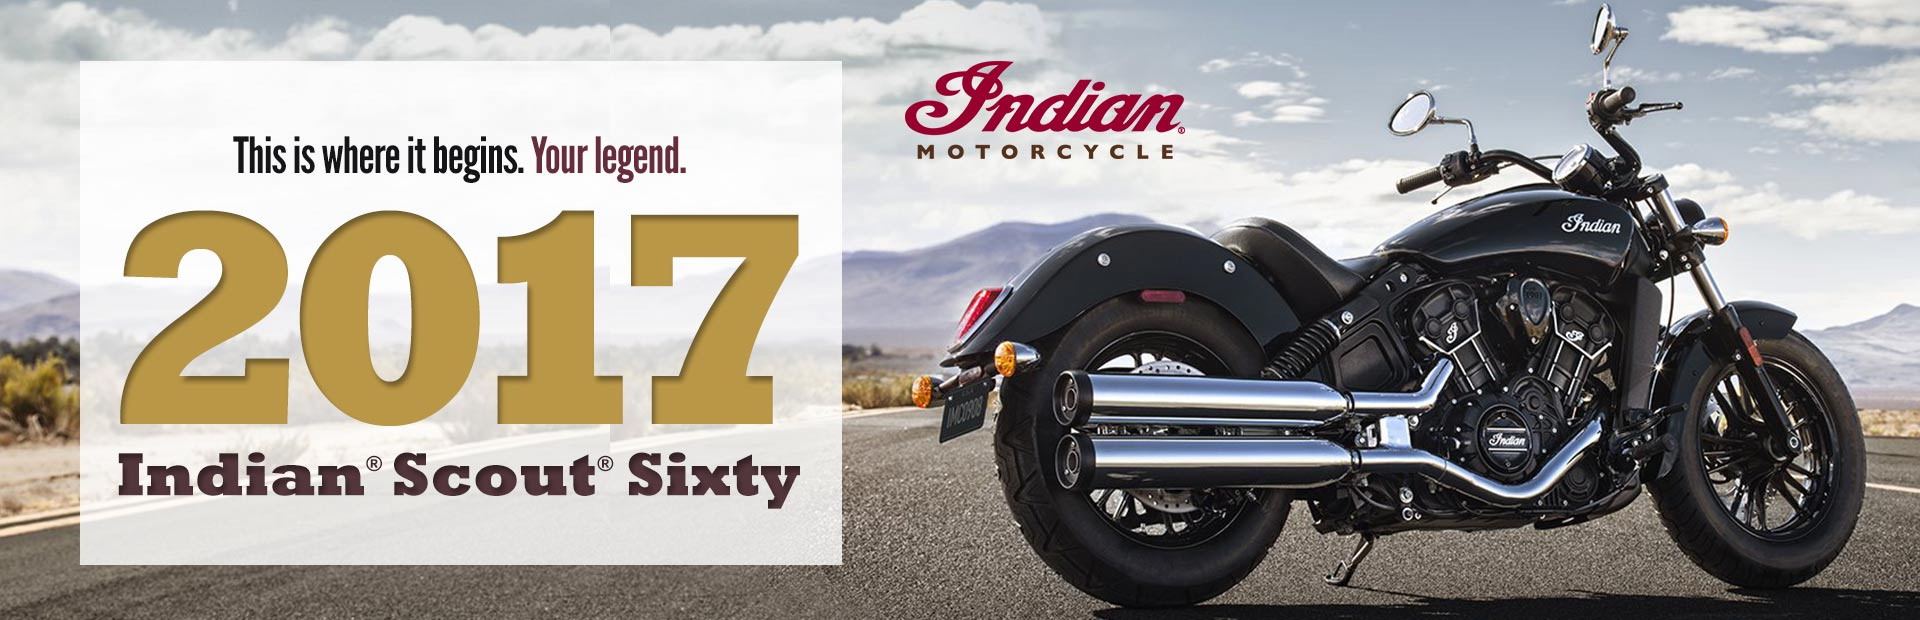 2017 Indian® Scout® Sixty: Click here to view the model.